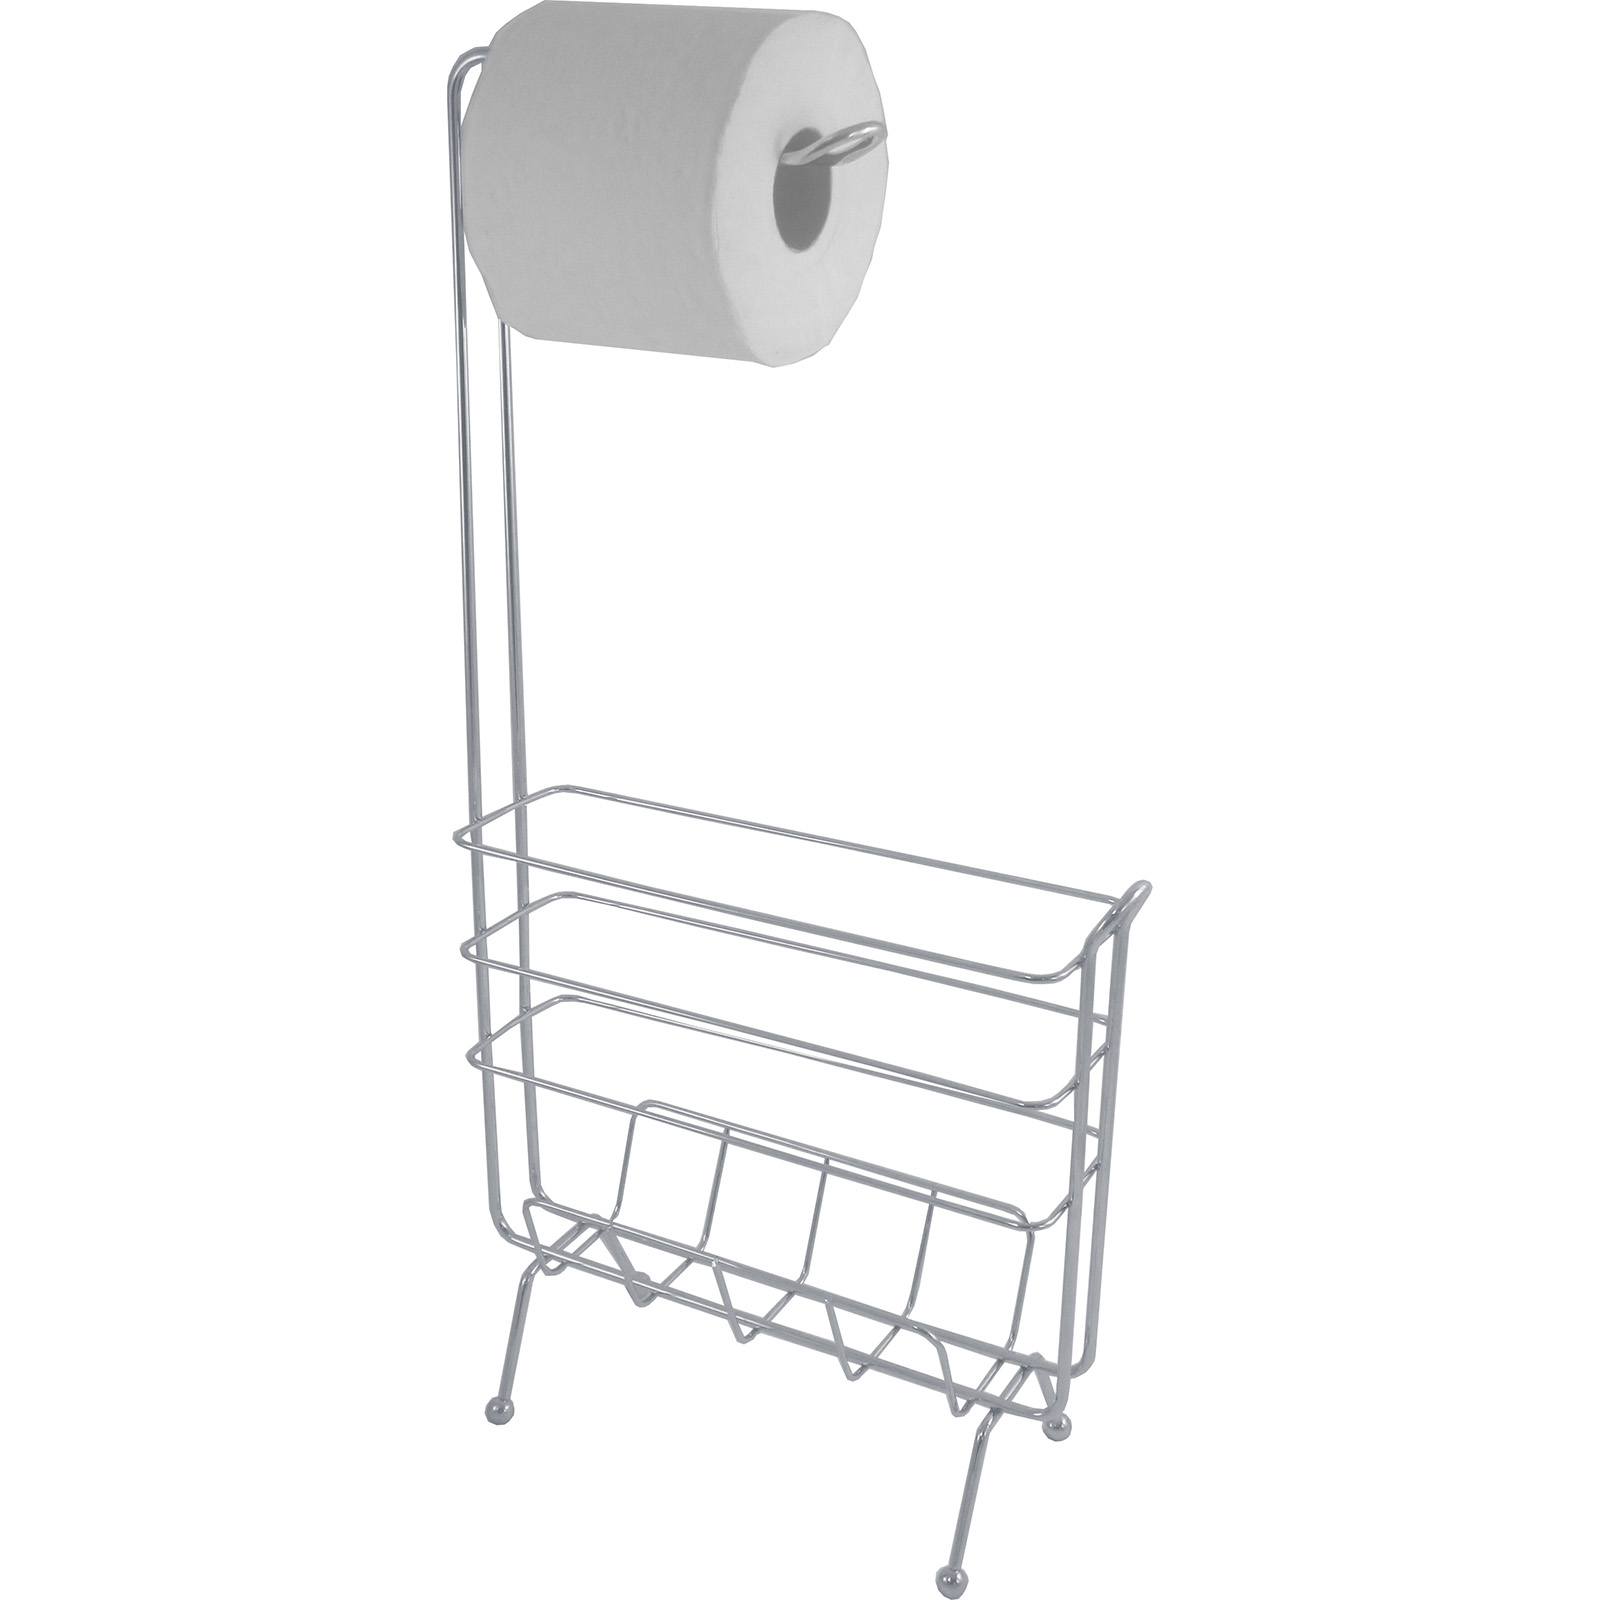 Toilet Paper Holder Rack Exquisite Slim Profile Toilet Paper Holder With Magazine